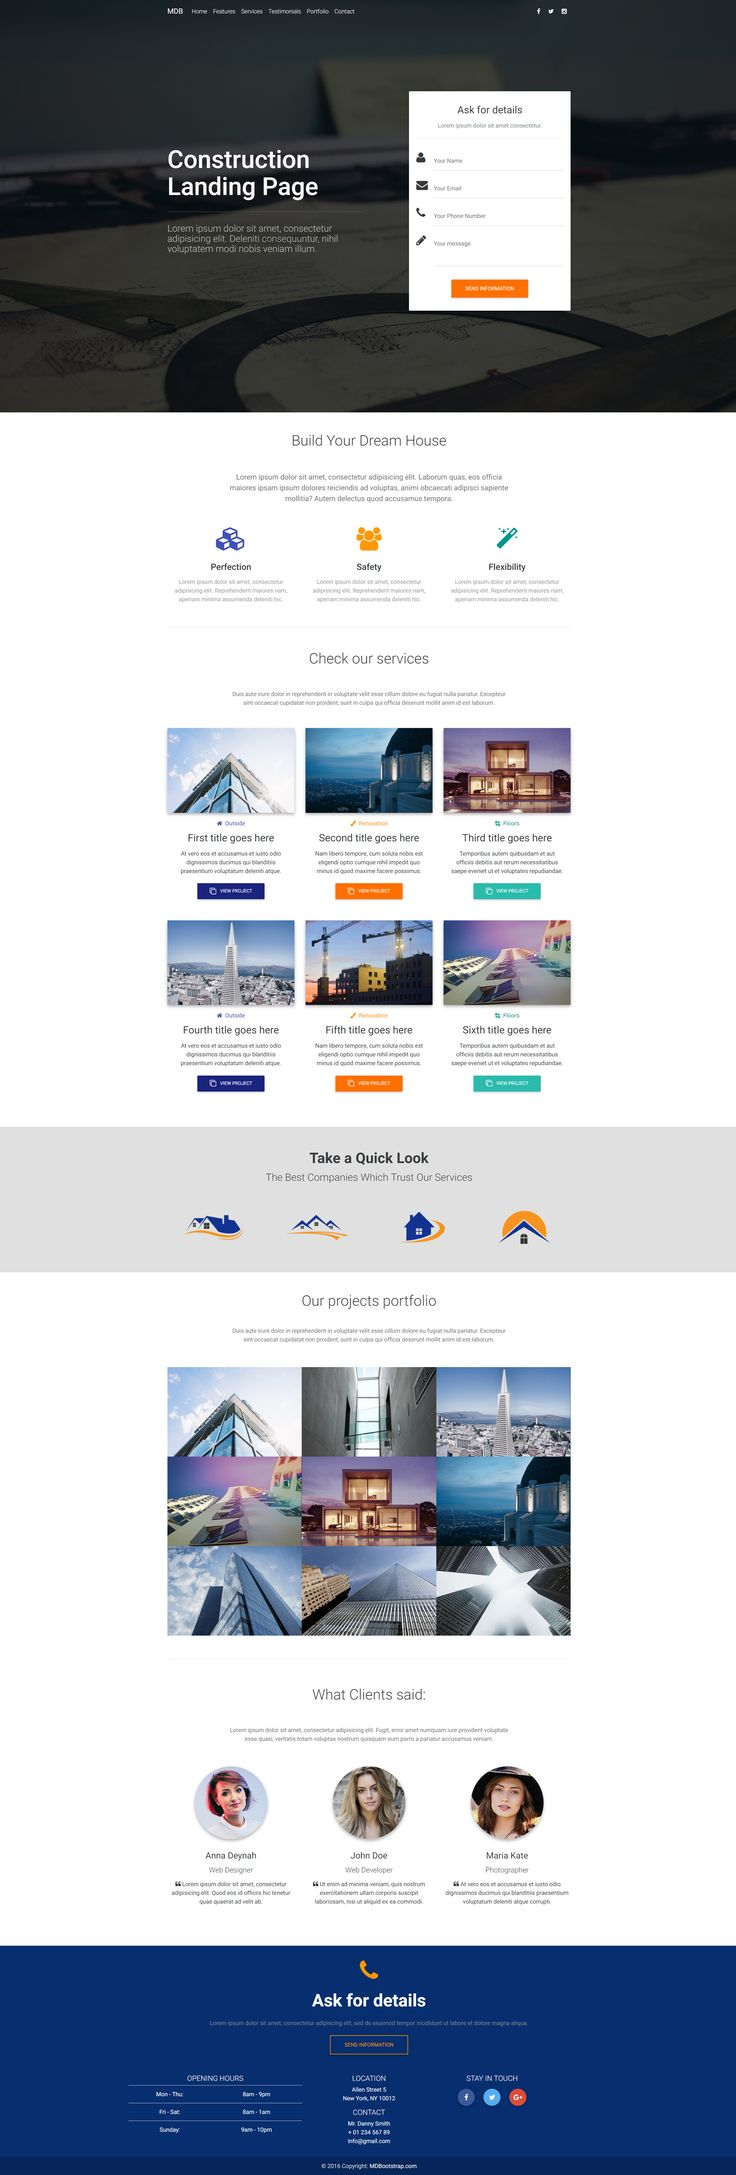 Material Design Construction Landing Page Template, created with Material Design for Bootstrap